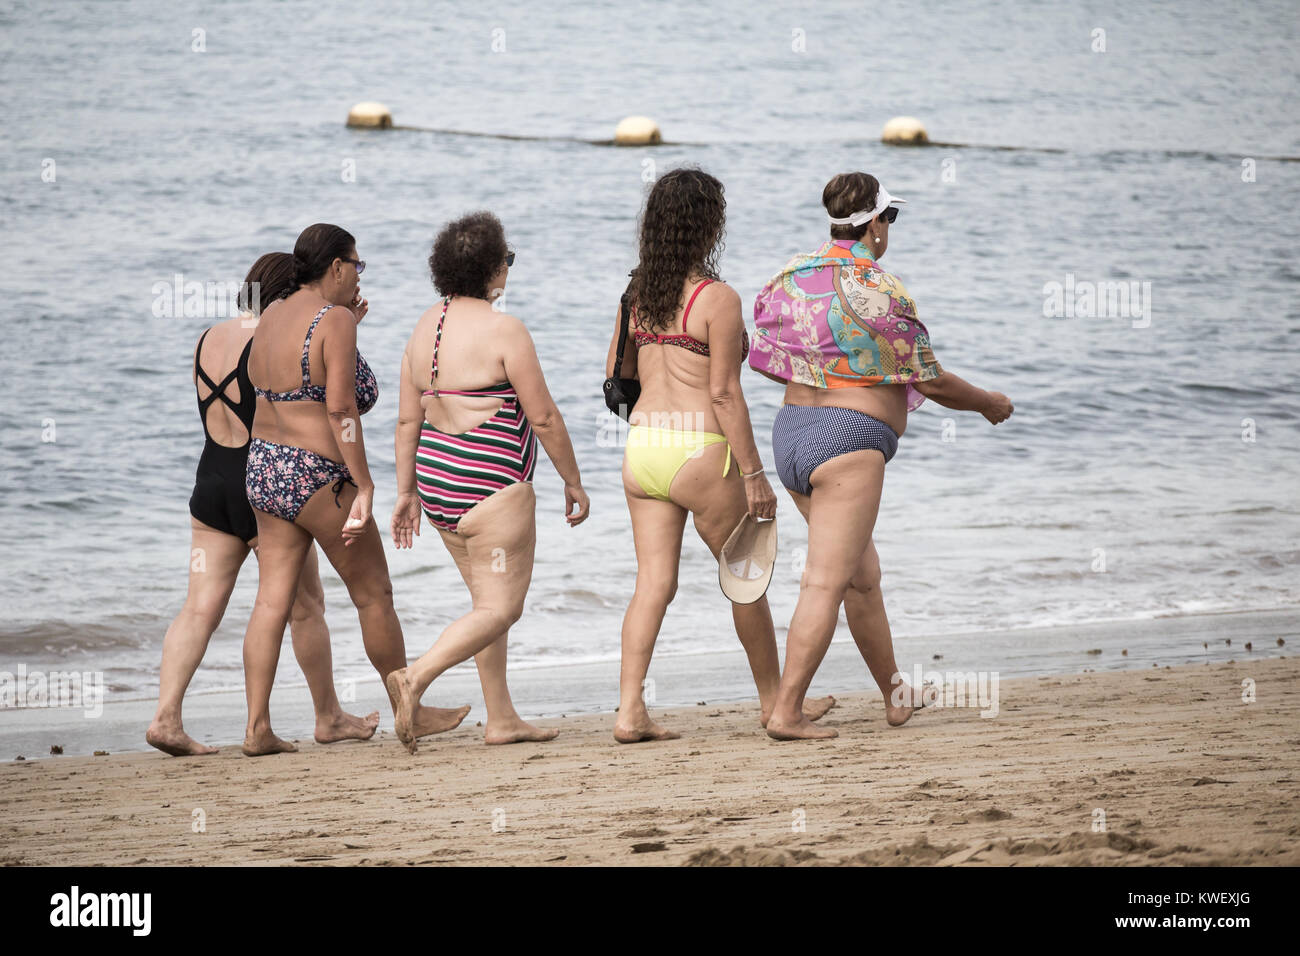 Local Spanish women in swimming costumes walking on beach in Spain - Stock Image